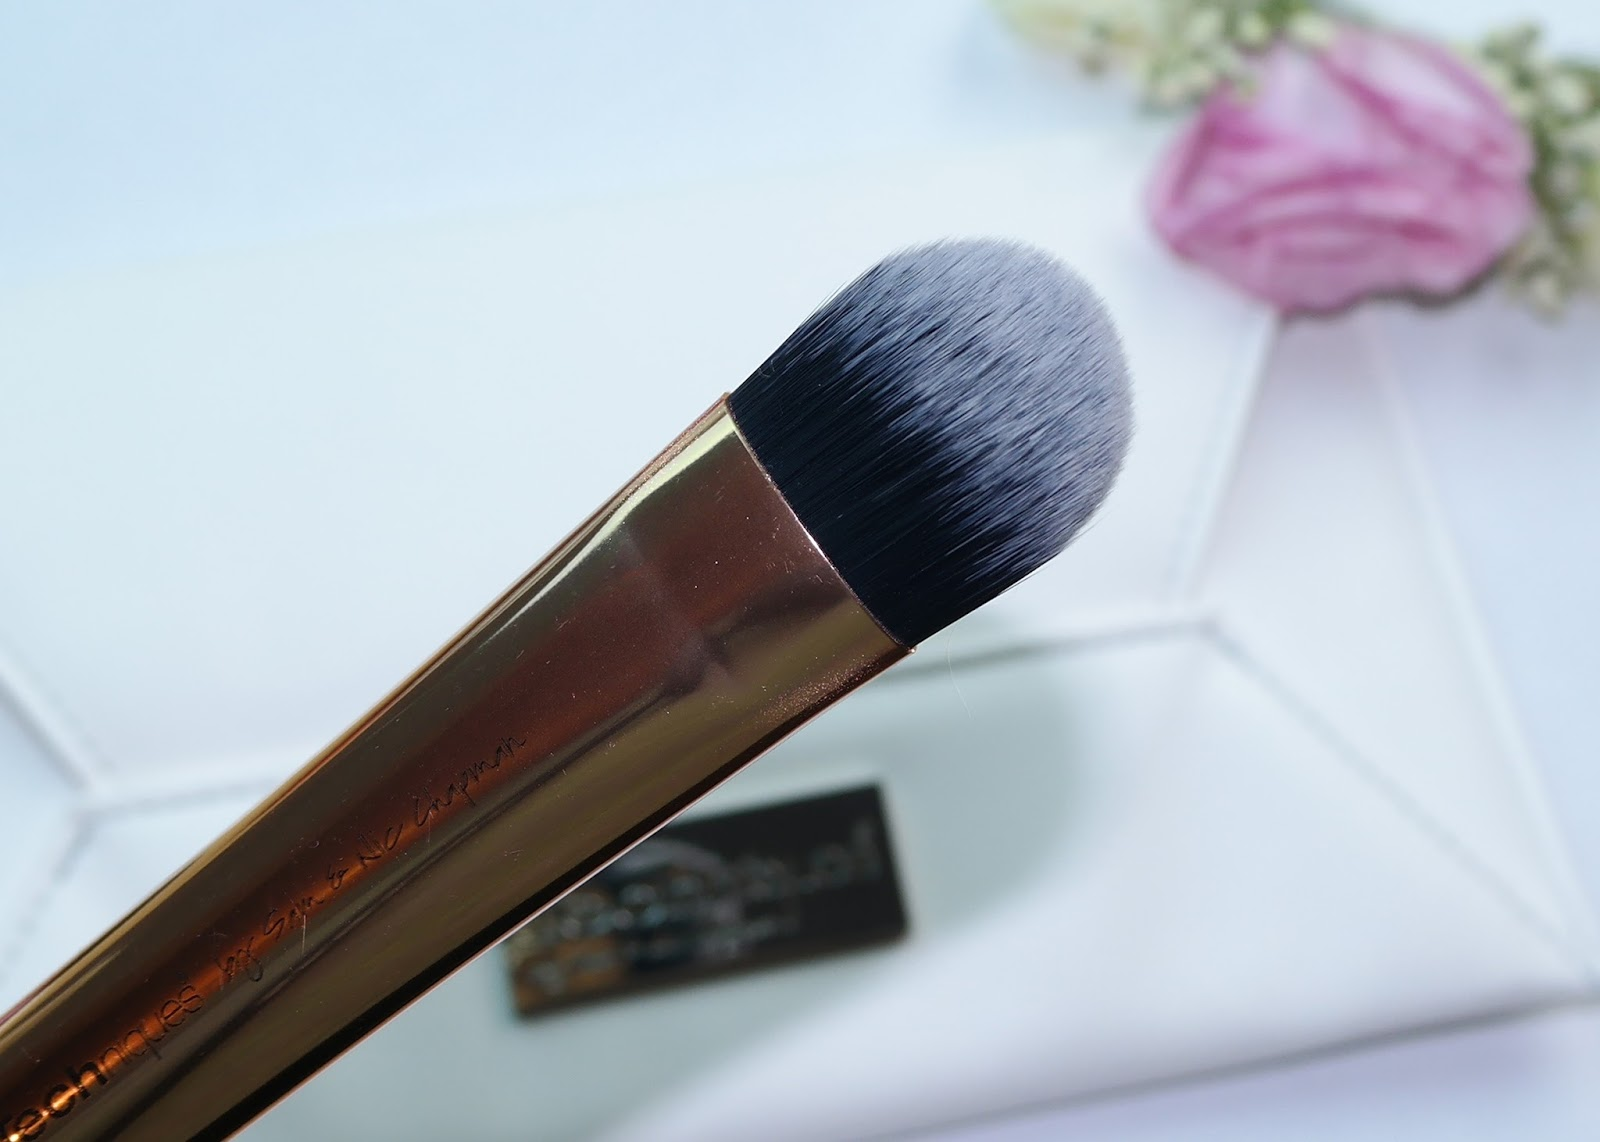 Real Techniques Tapered Foundation Brush